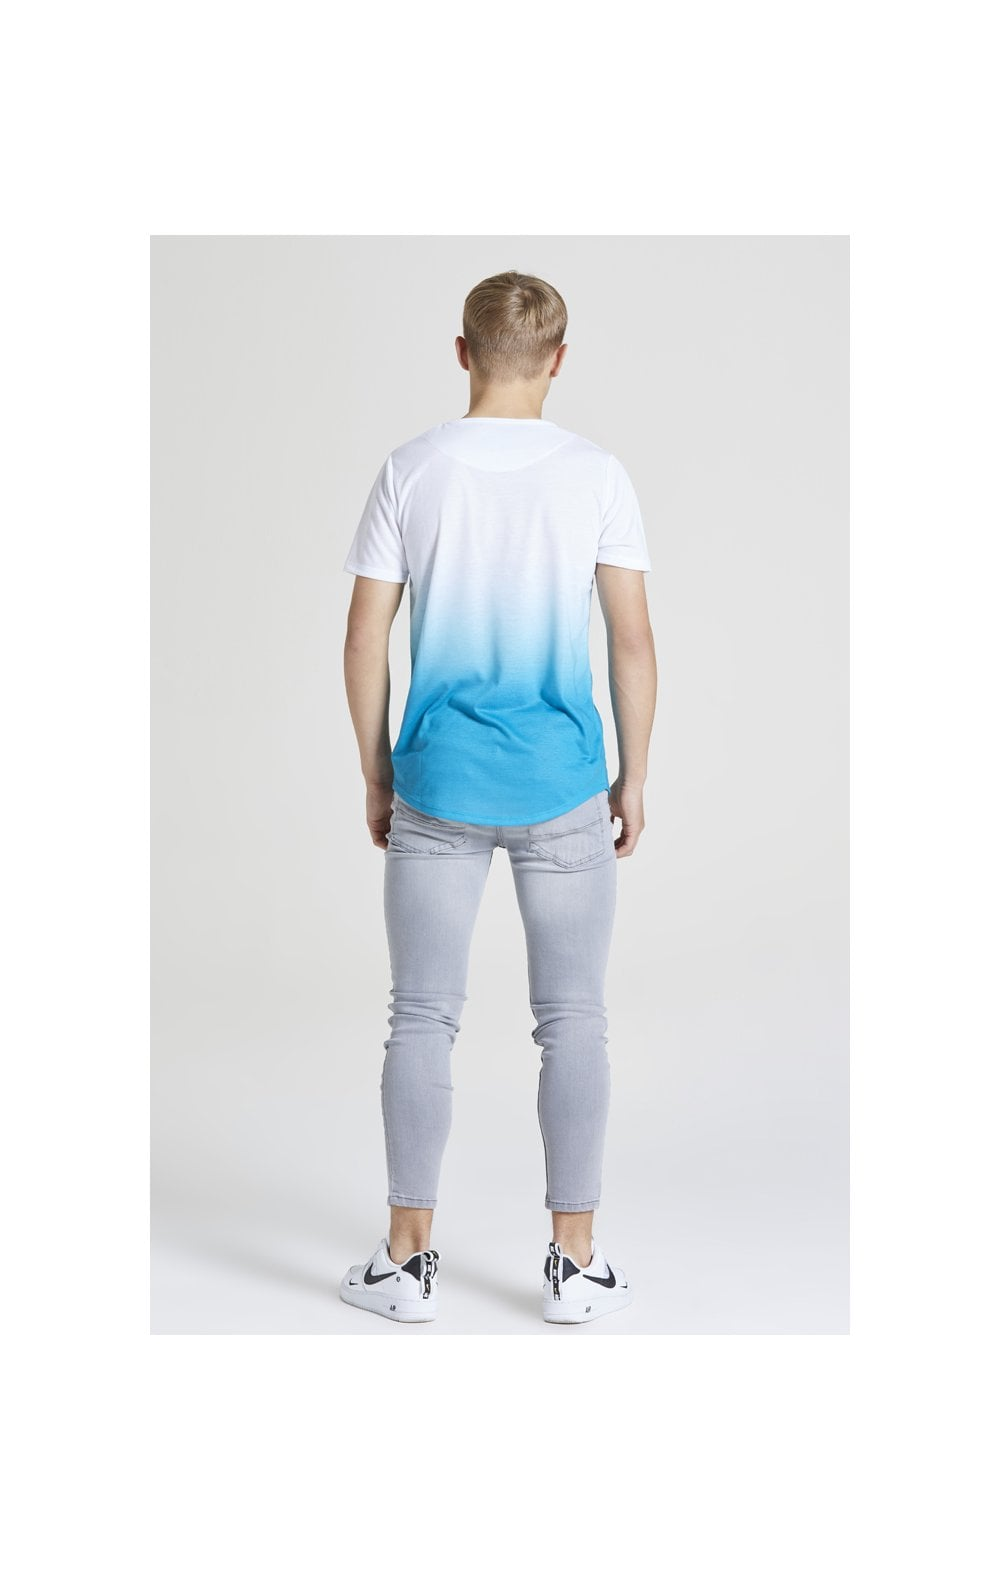 Illusive London Core Fade Tee – White & Teal Green (5)